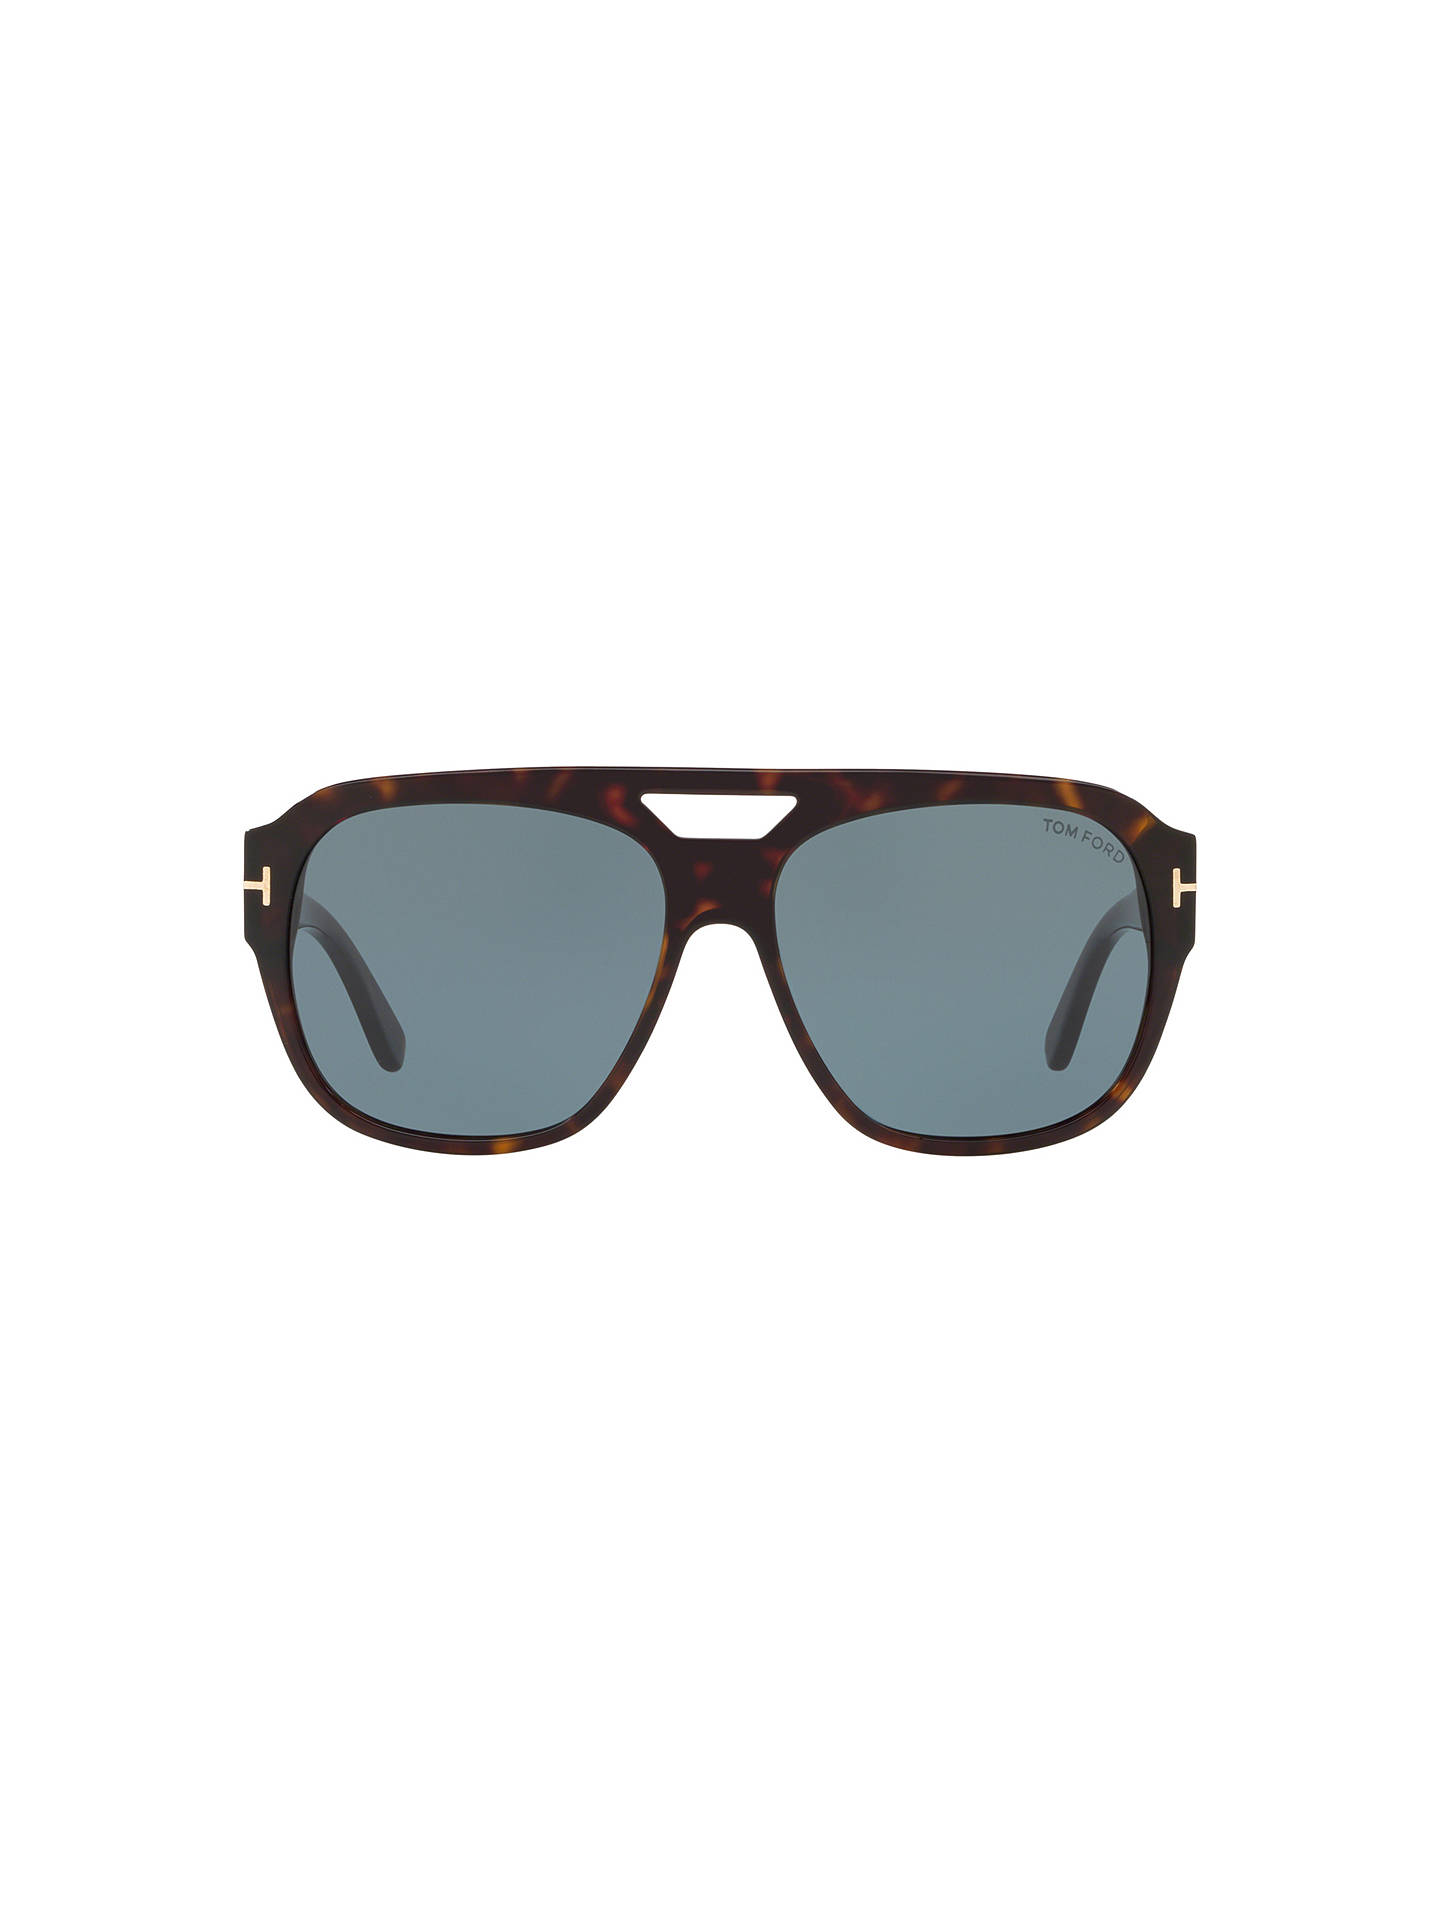 Buy TOM FORD FT0630 Unisex Bachardy-02 Square Sunglasses, Tortoise/Blue Online at johnlewis.com